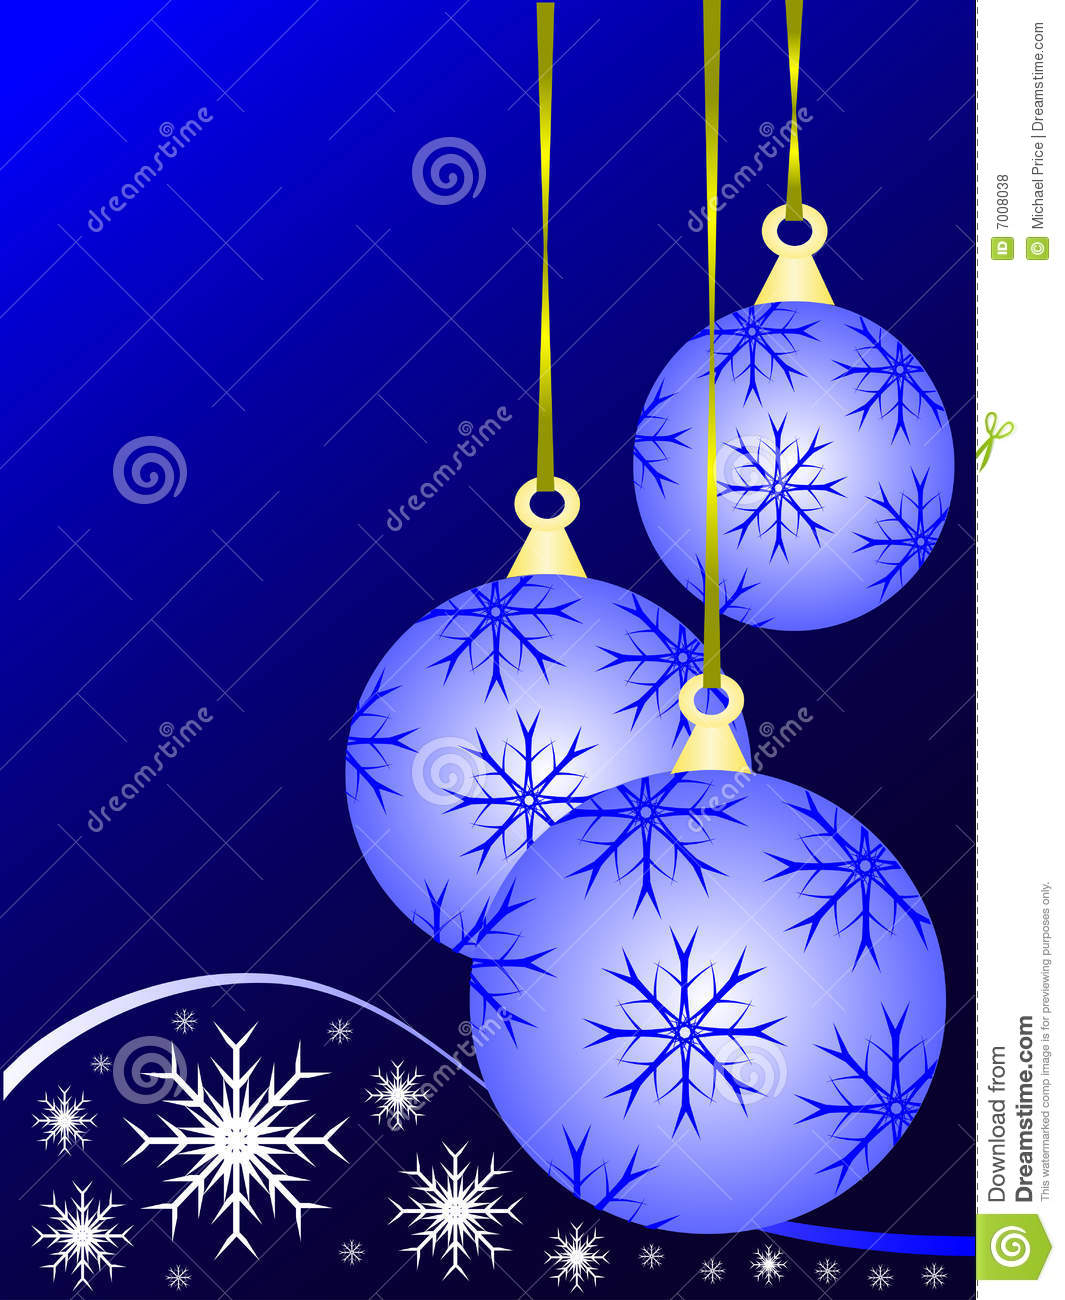 Blue Christmas Baubles Royalty Free Stock Photos Image